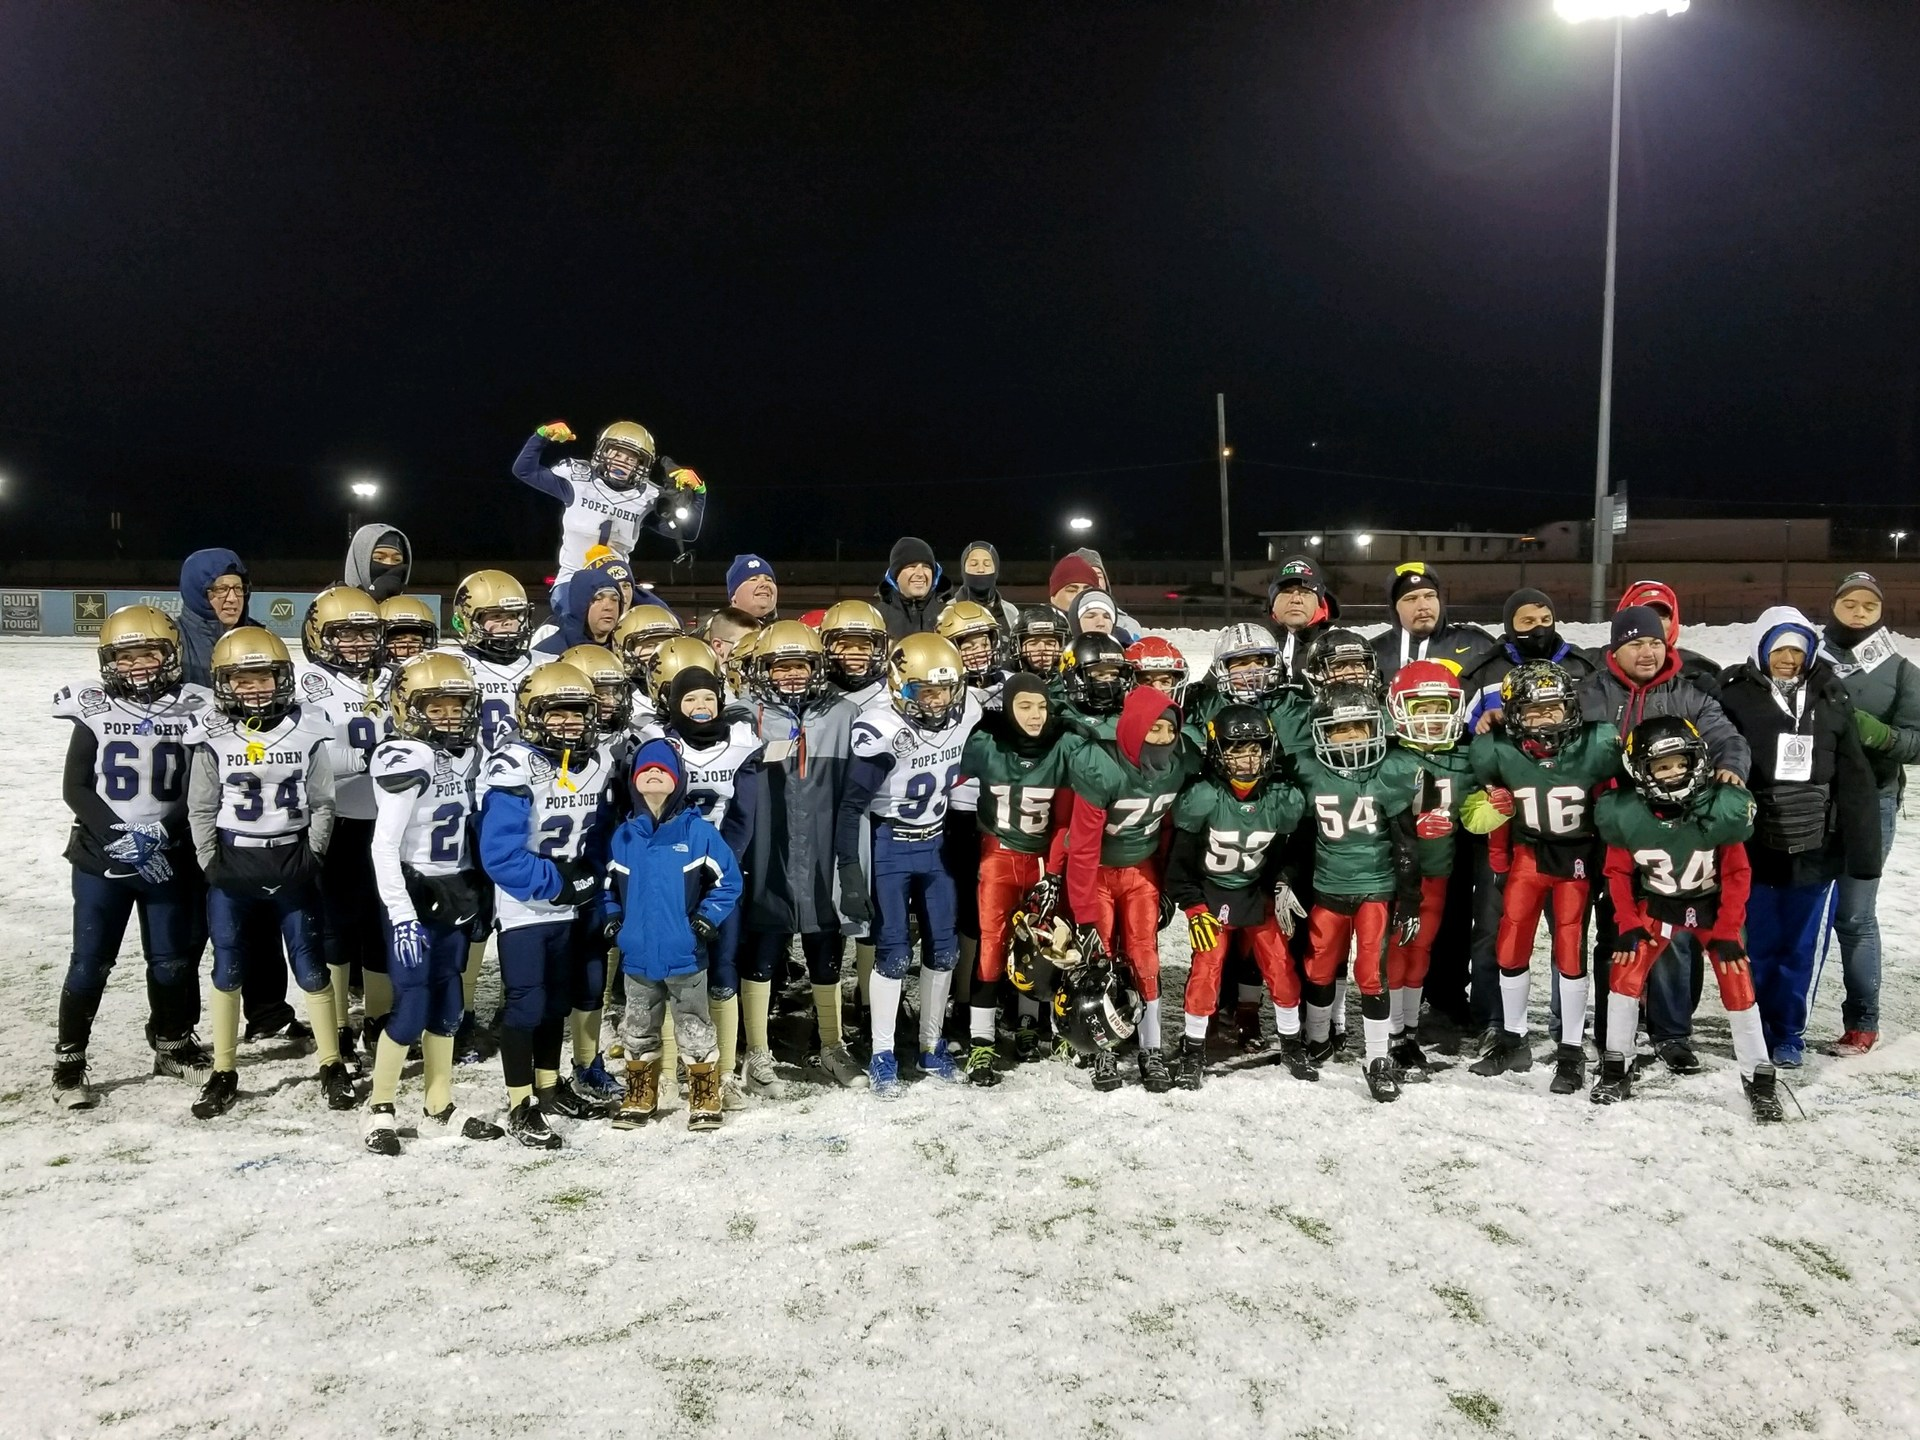 Jr Lions 10U Football team poses after playing team from Mexico at nationals